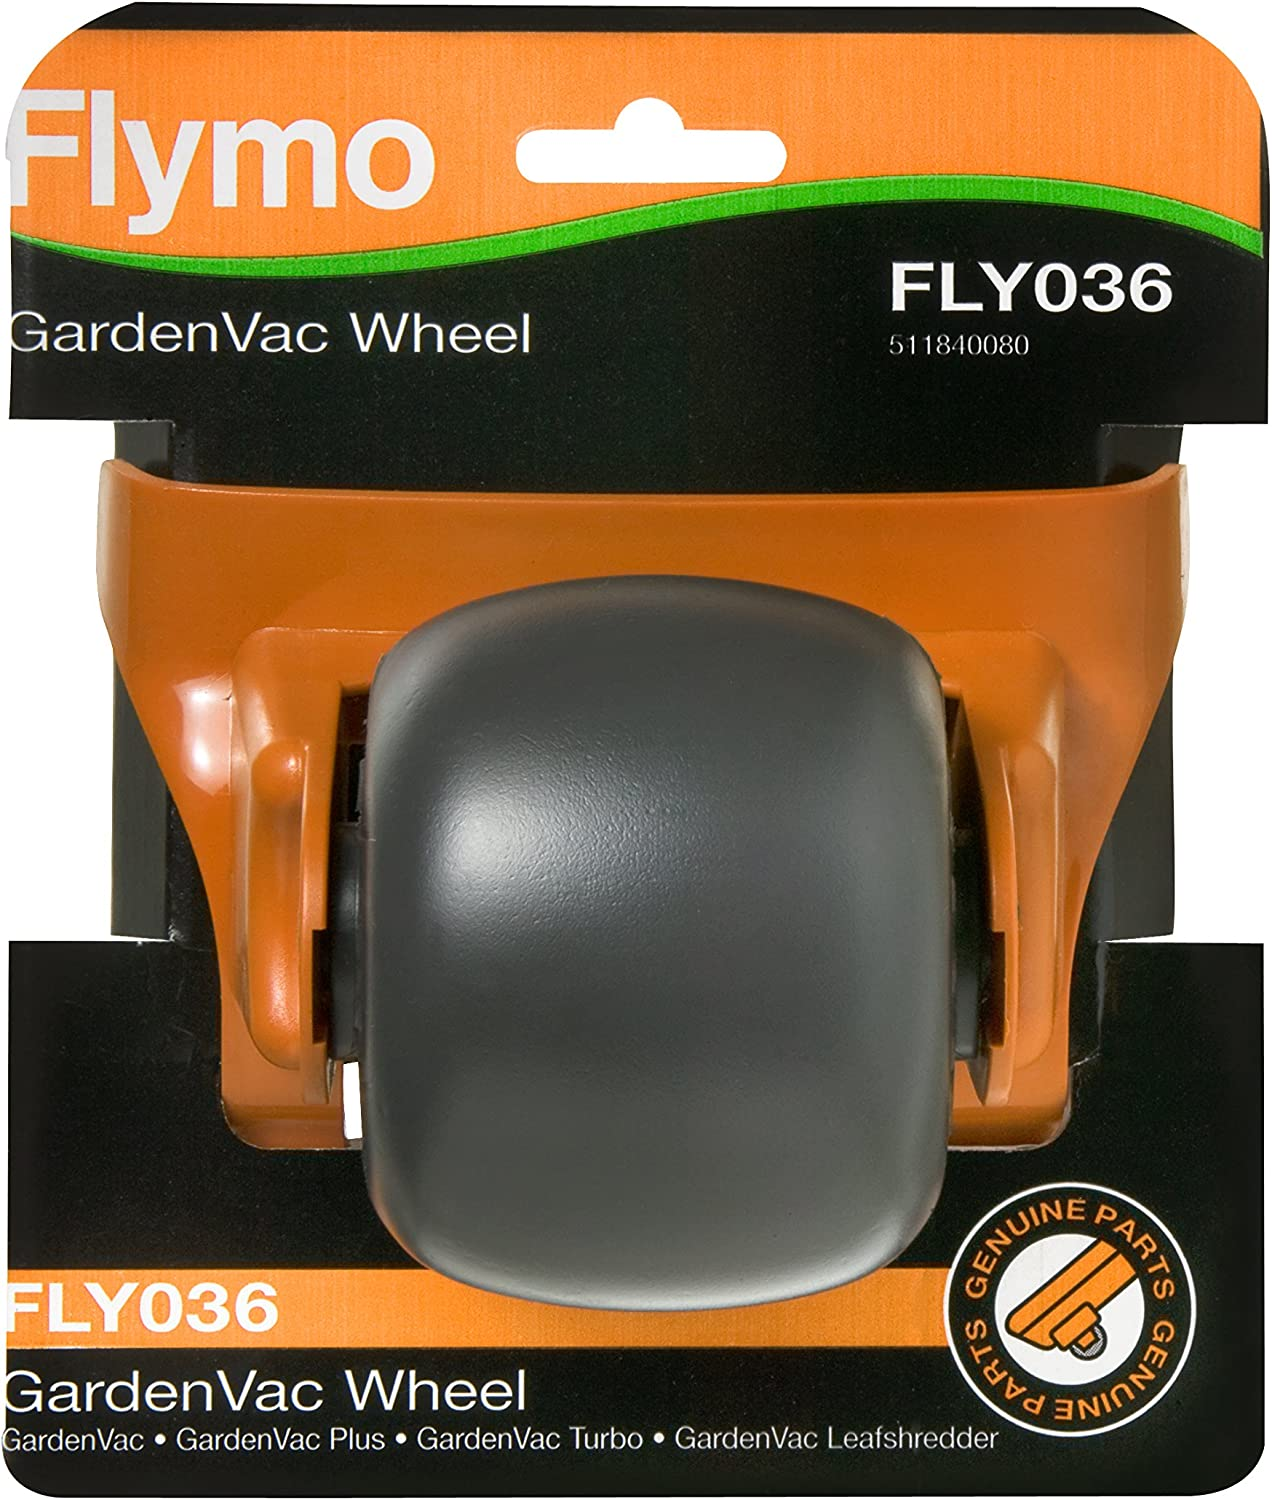 Flymo GardenVac 2700W Electric Garden Blower Vacuum with Flymo Wheel to suit all Gardenvacs FLY036 and Flymo Shred Lines x 5 to suit Gardenvac FLY024